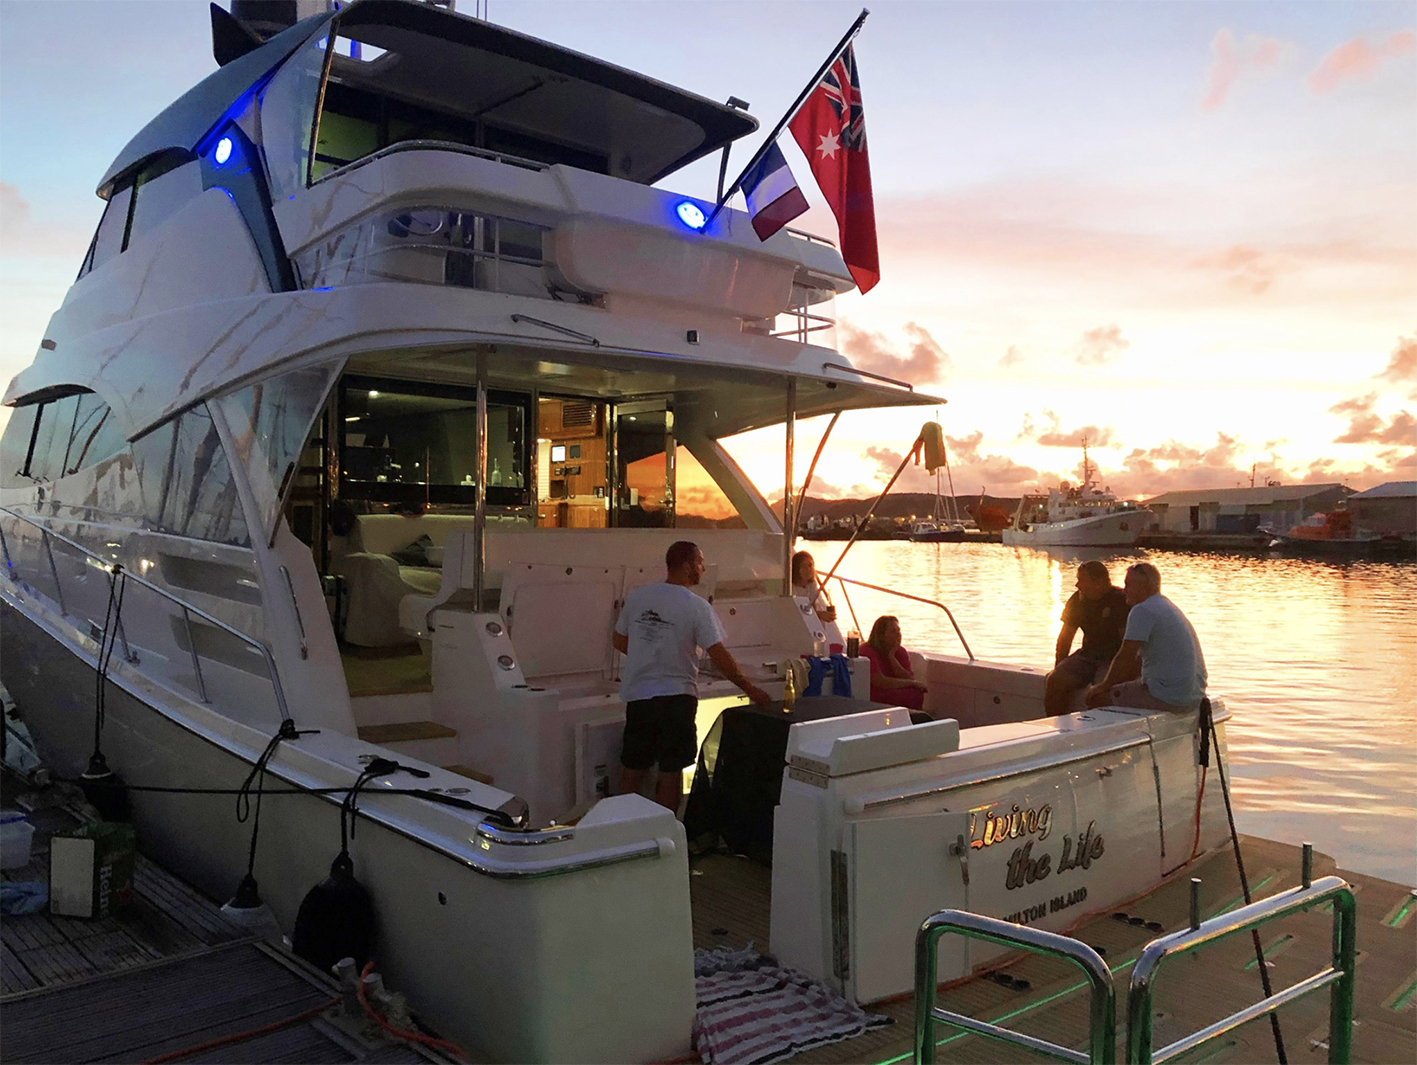 Across the Pacific New Caledonia nights light up the Flemings' Riviera 68 Sports Motor Yacht